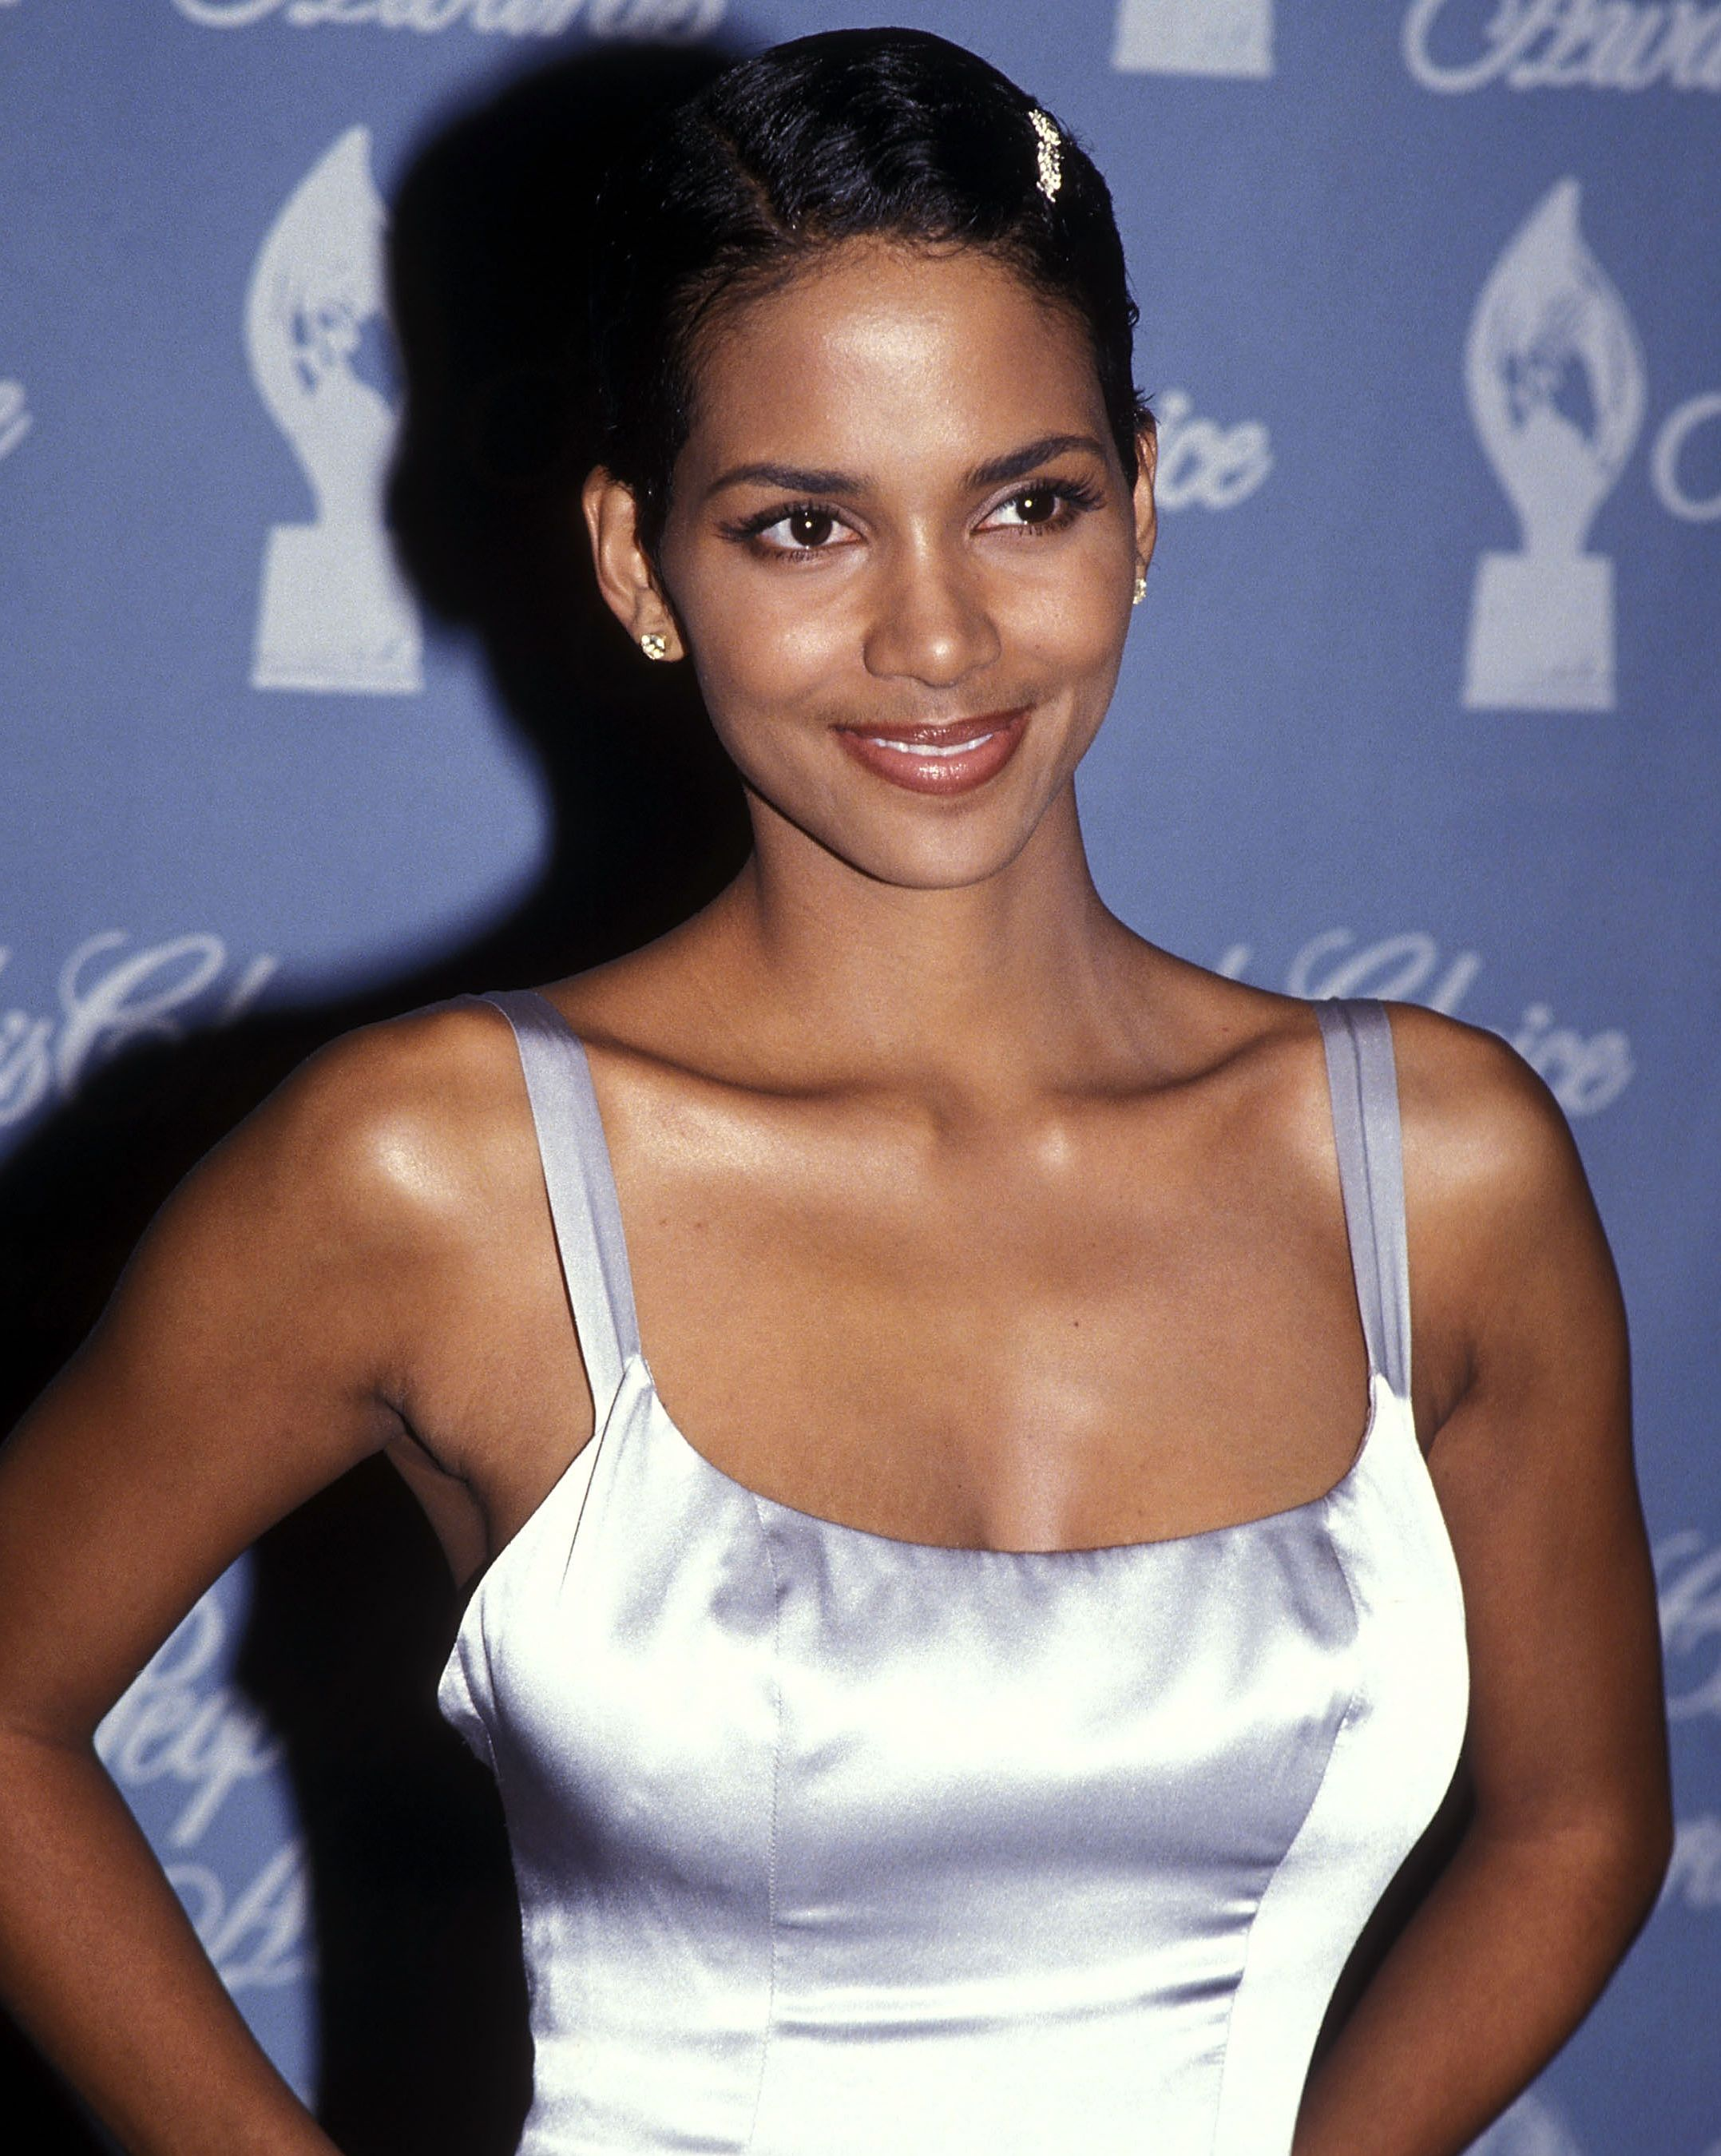 Shine Bright Like A Diamond It seems Halle likes dresses with straps. The style accentuates her toned arms beautifully, especially the shiny number she wore to the 1995 People's Choice Awards.